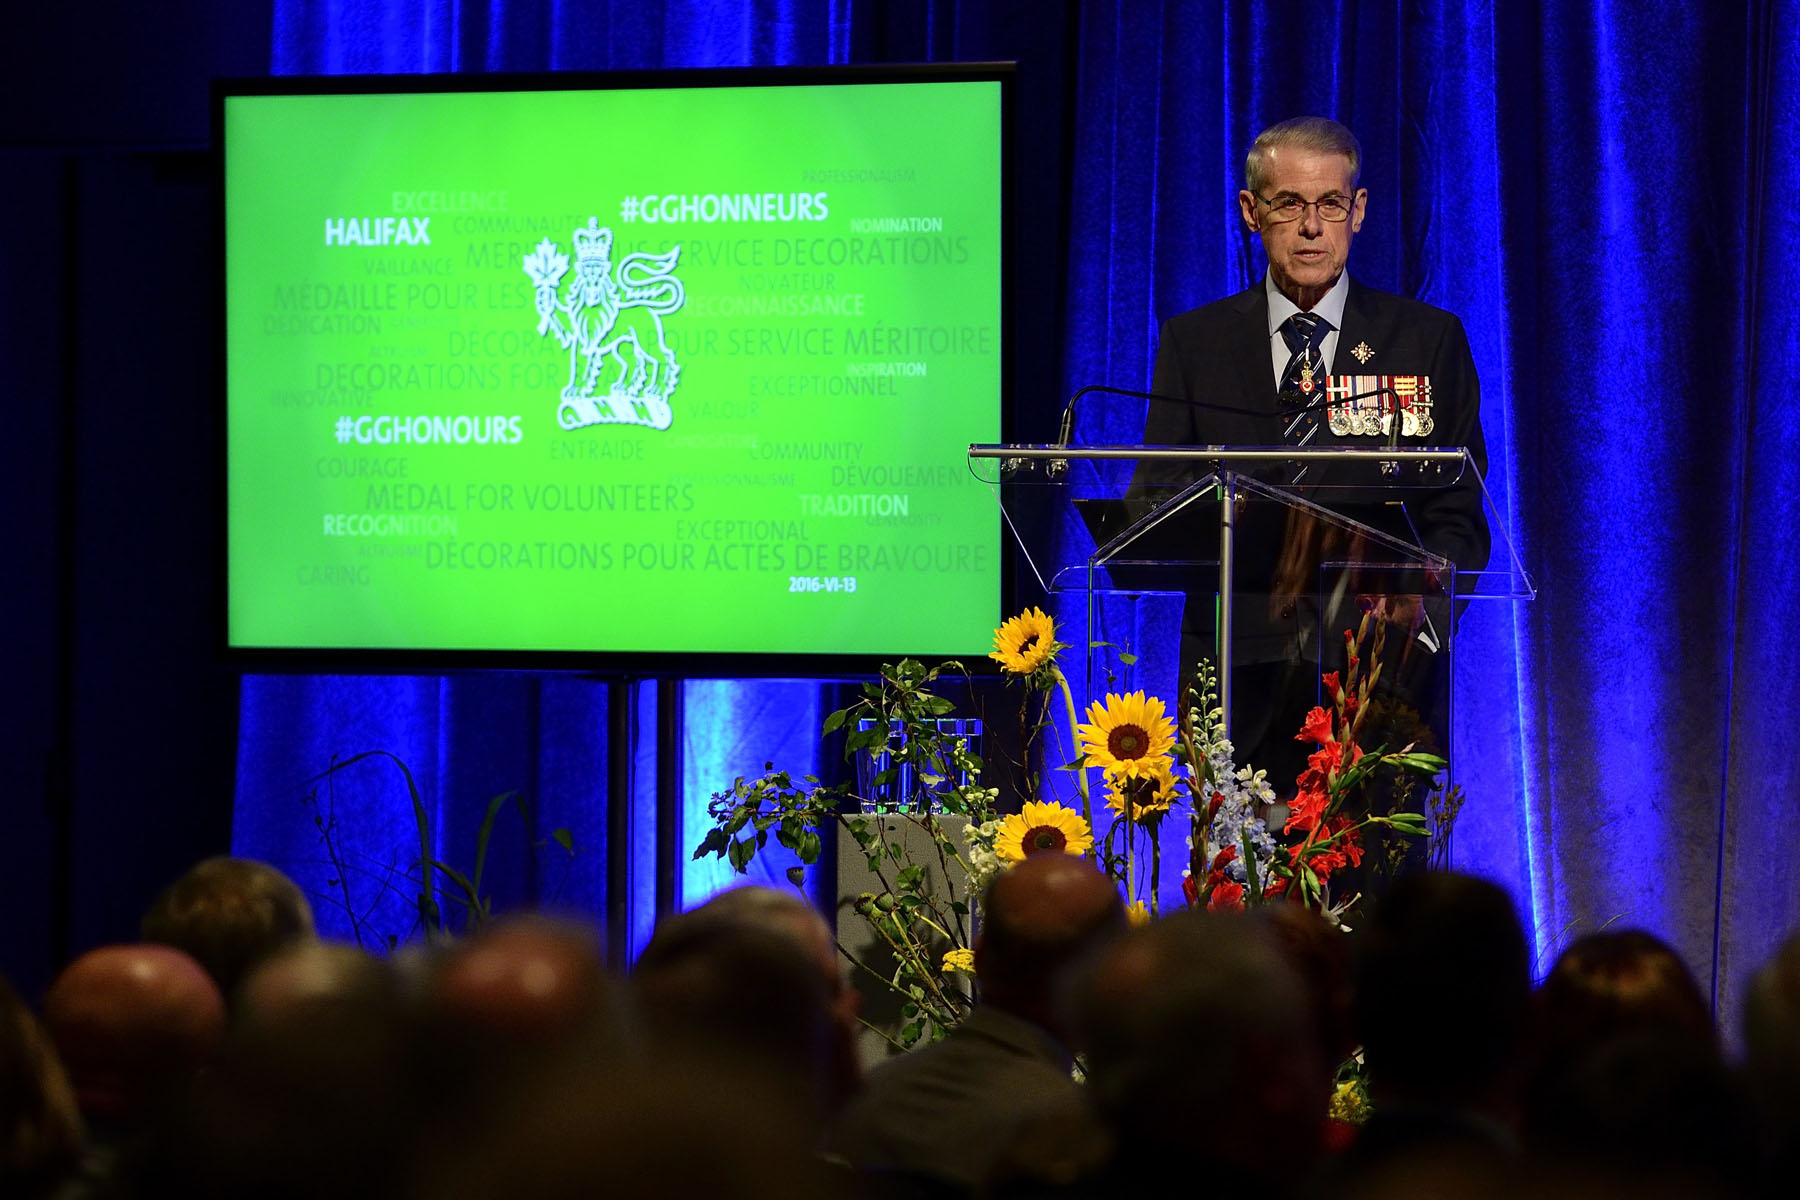 His Honour Brigadier-General the Honourable John James Grant (Ret'd), Lieutenant Governor of Nova Scotia, offered welcoming remarks.